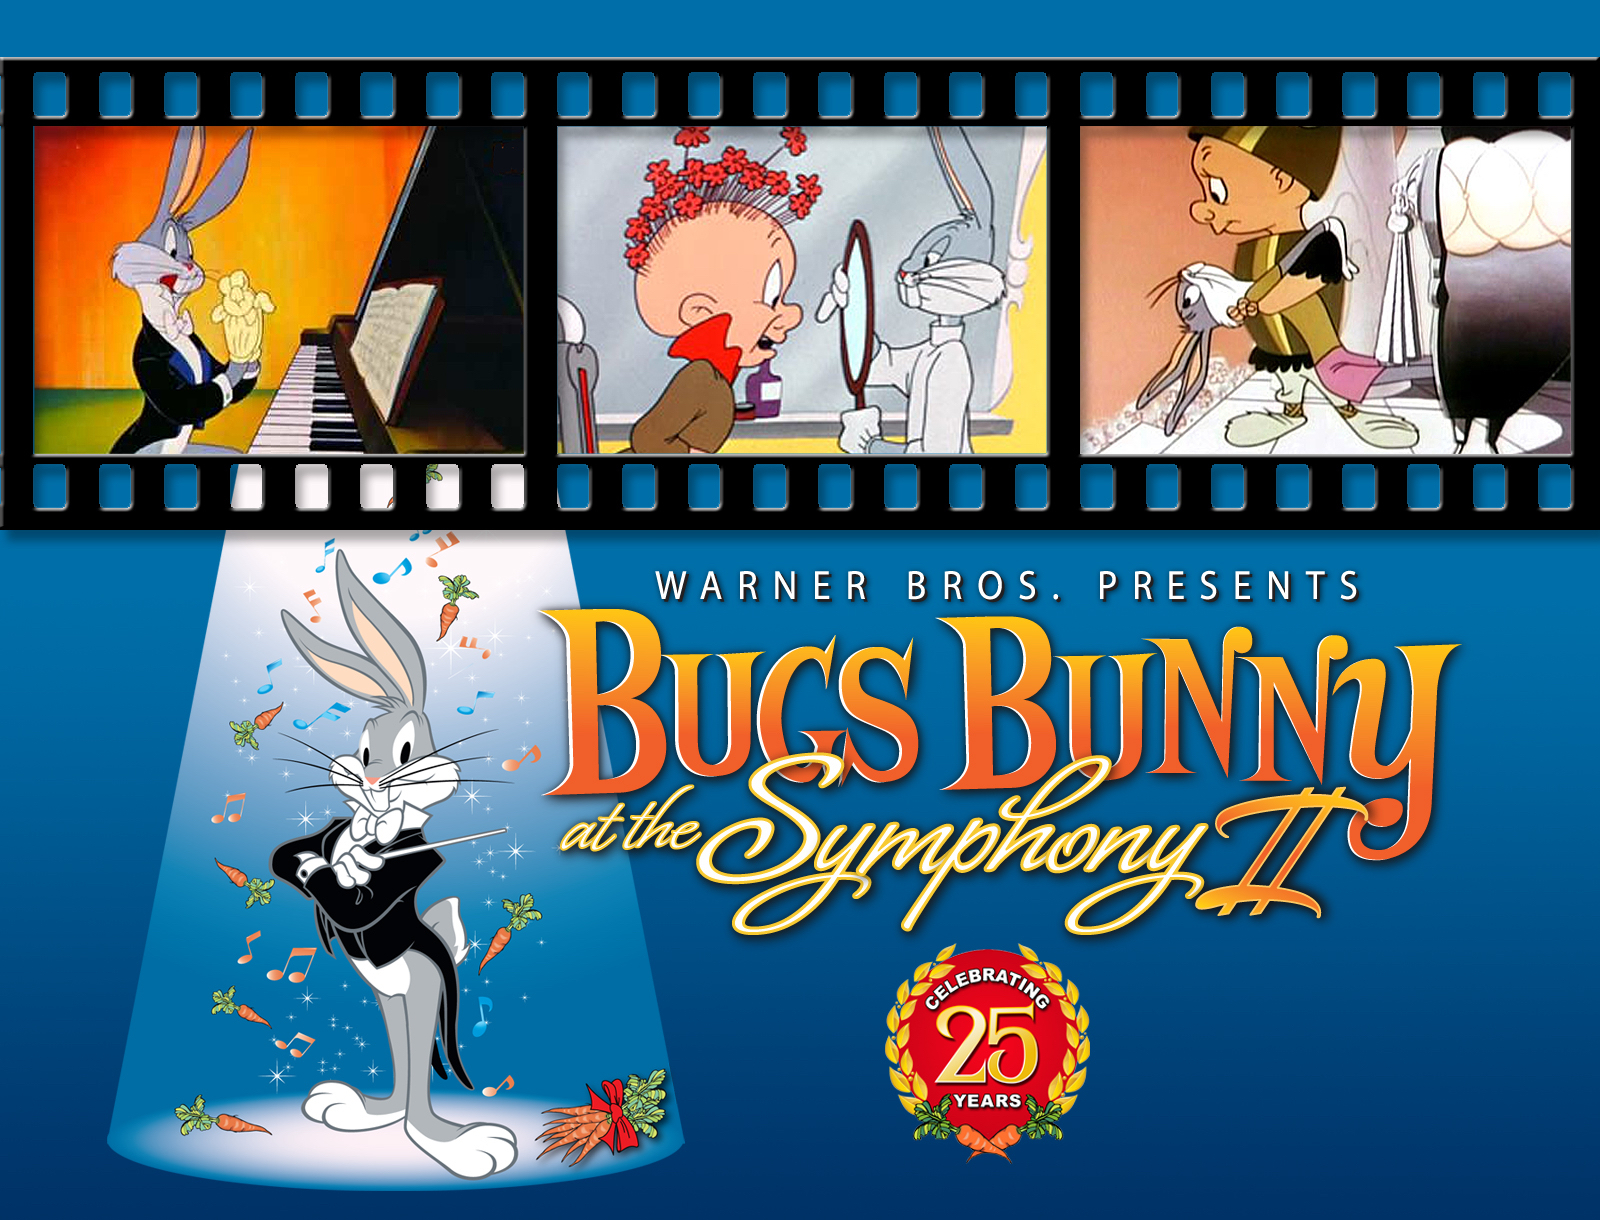 """Warner Bros. presents """"Bugs Bunny At The Symphony II"""" featuring Sinfonia Gulf Coast"""